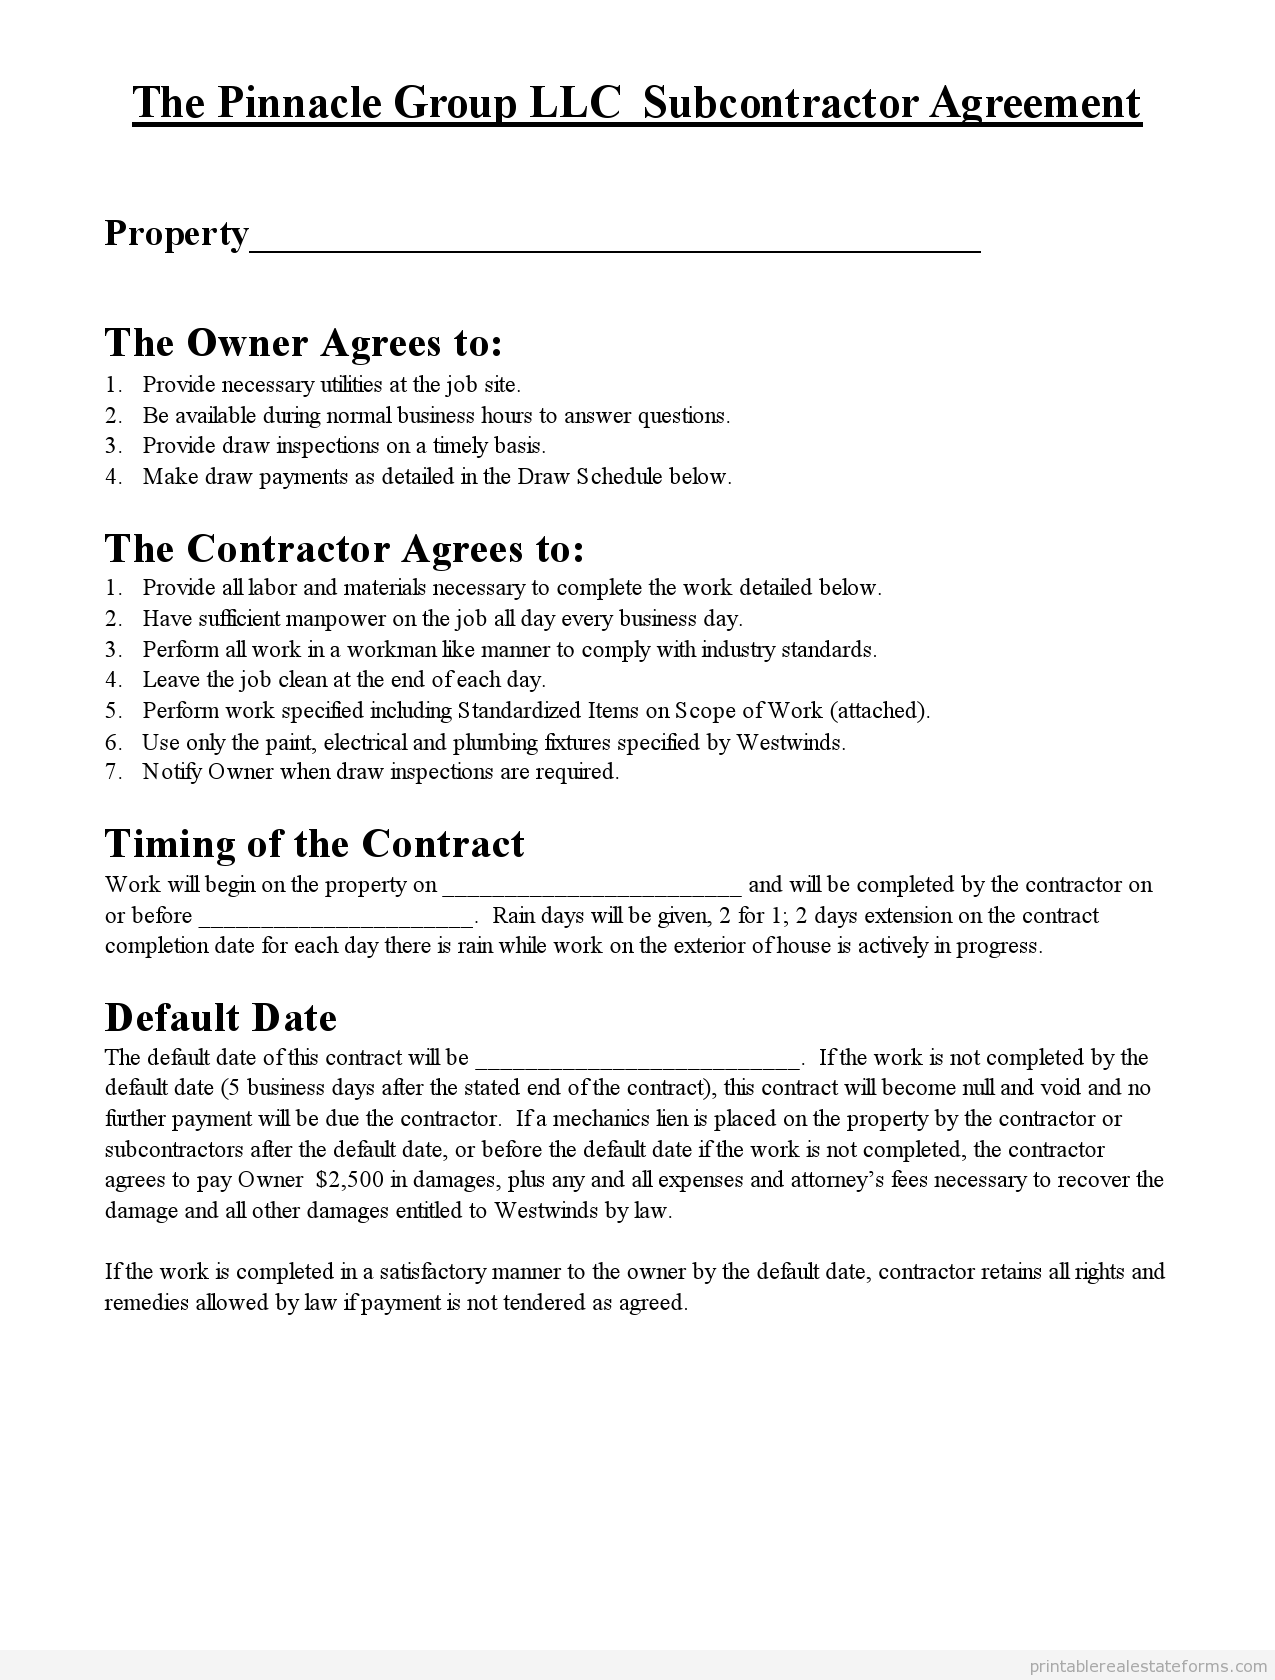 Free Printable Subcontractor Agreement Form Printable Real Estate - Subcontractor contract template